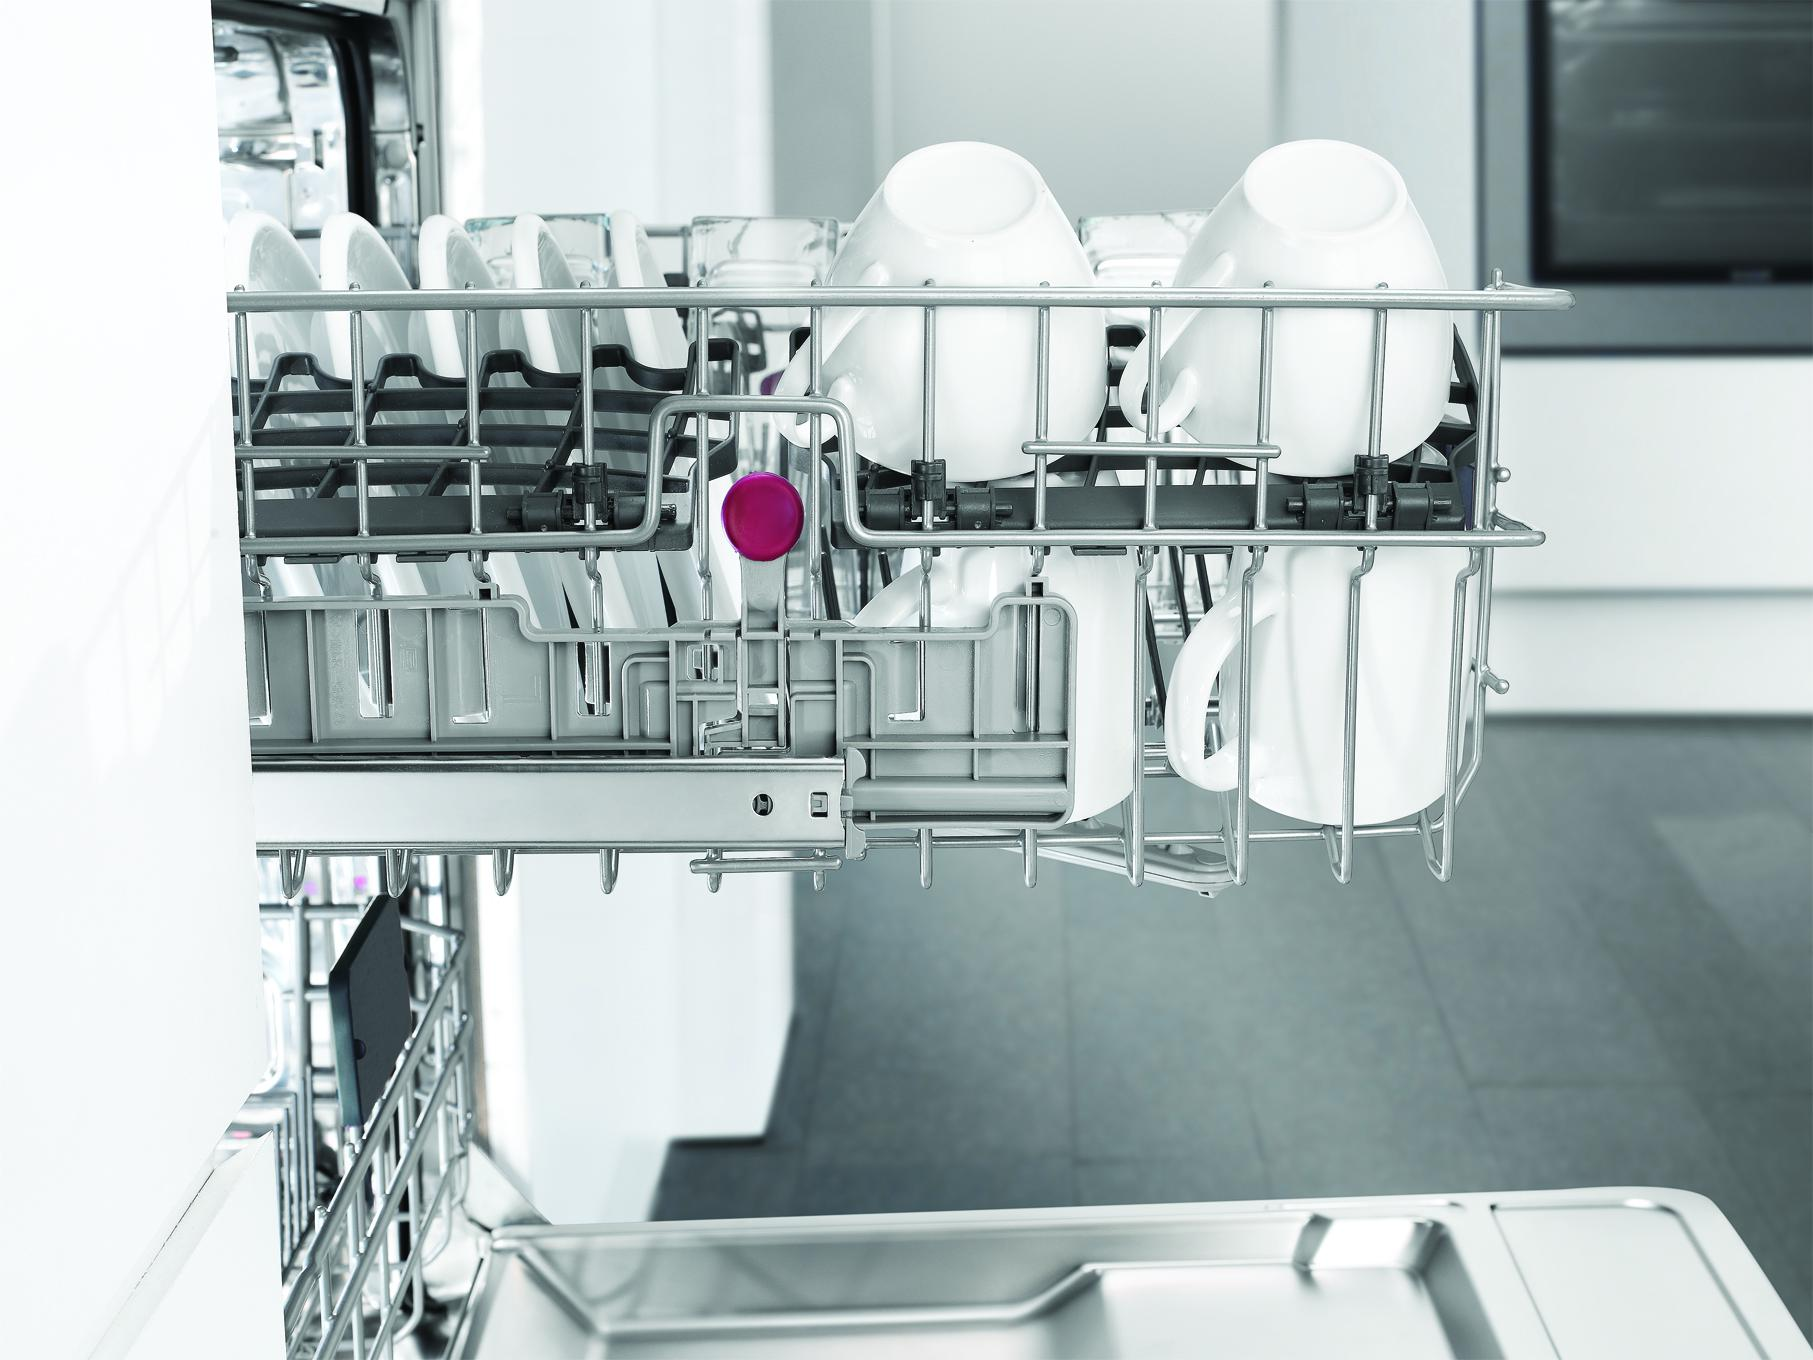 Blomberg-DWT25502-Dishwasher-Interior